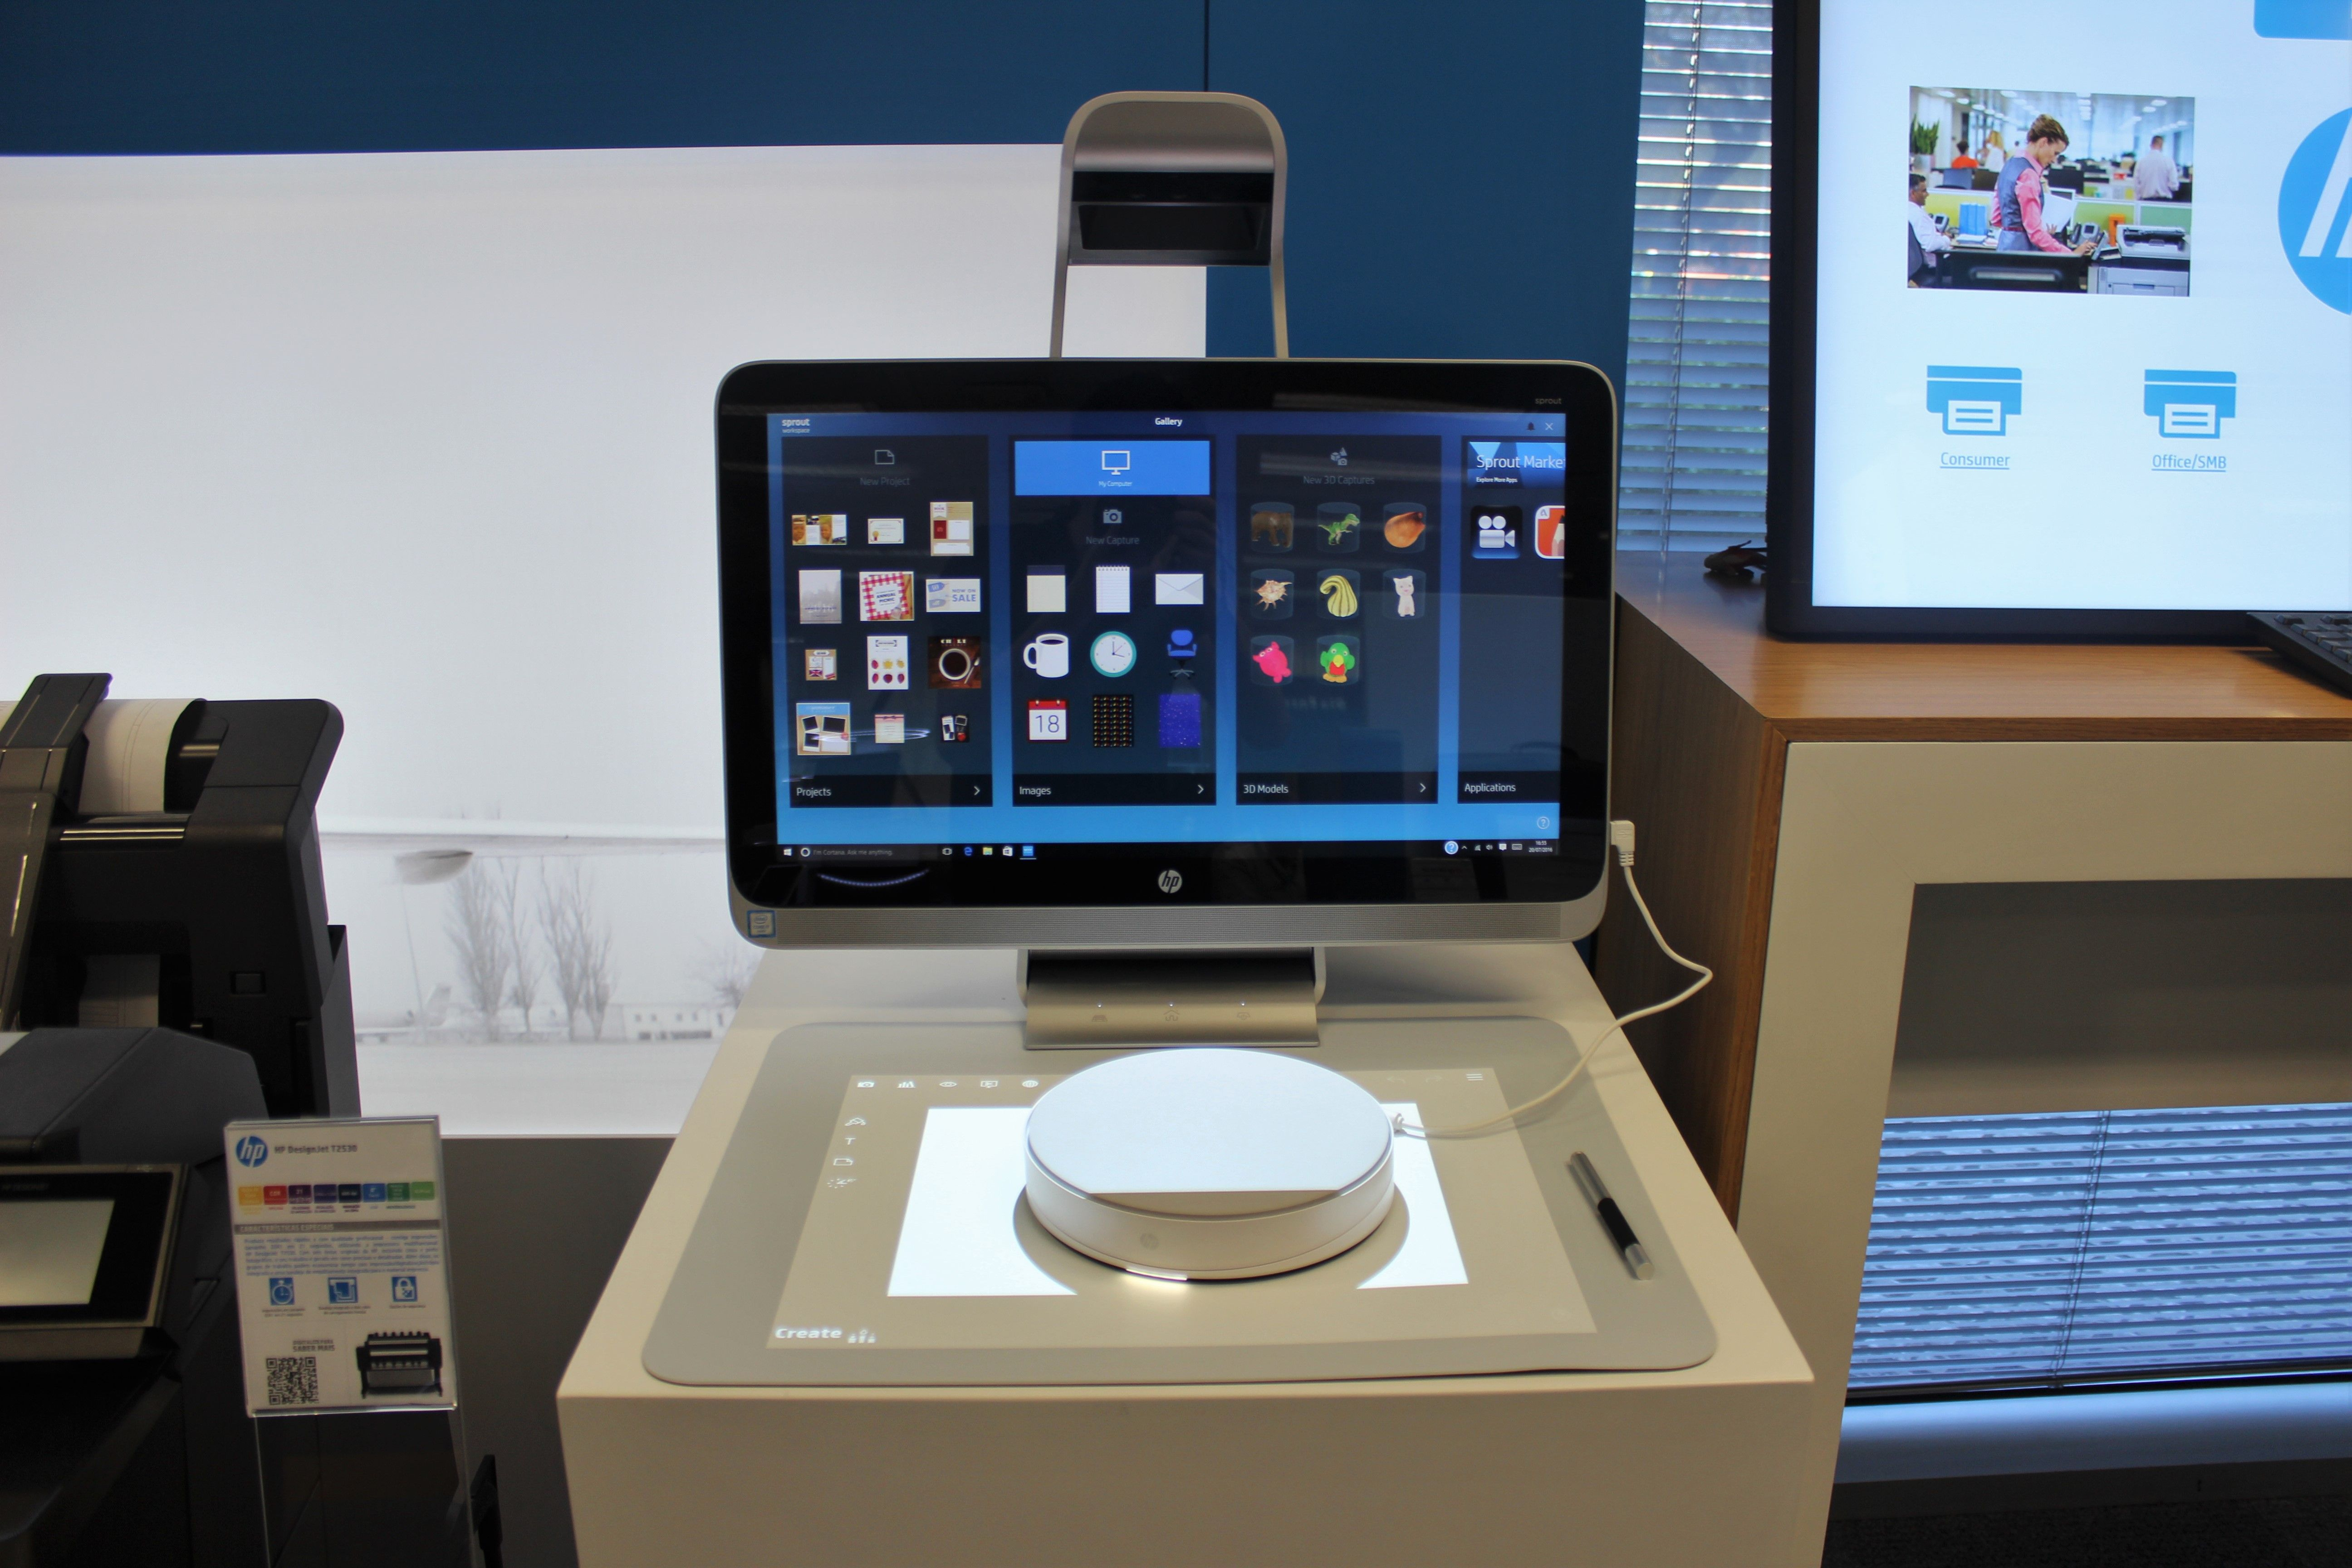 HP Sprout Pro